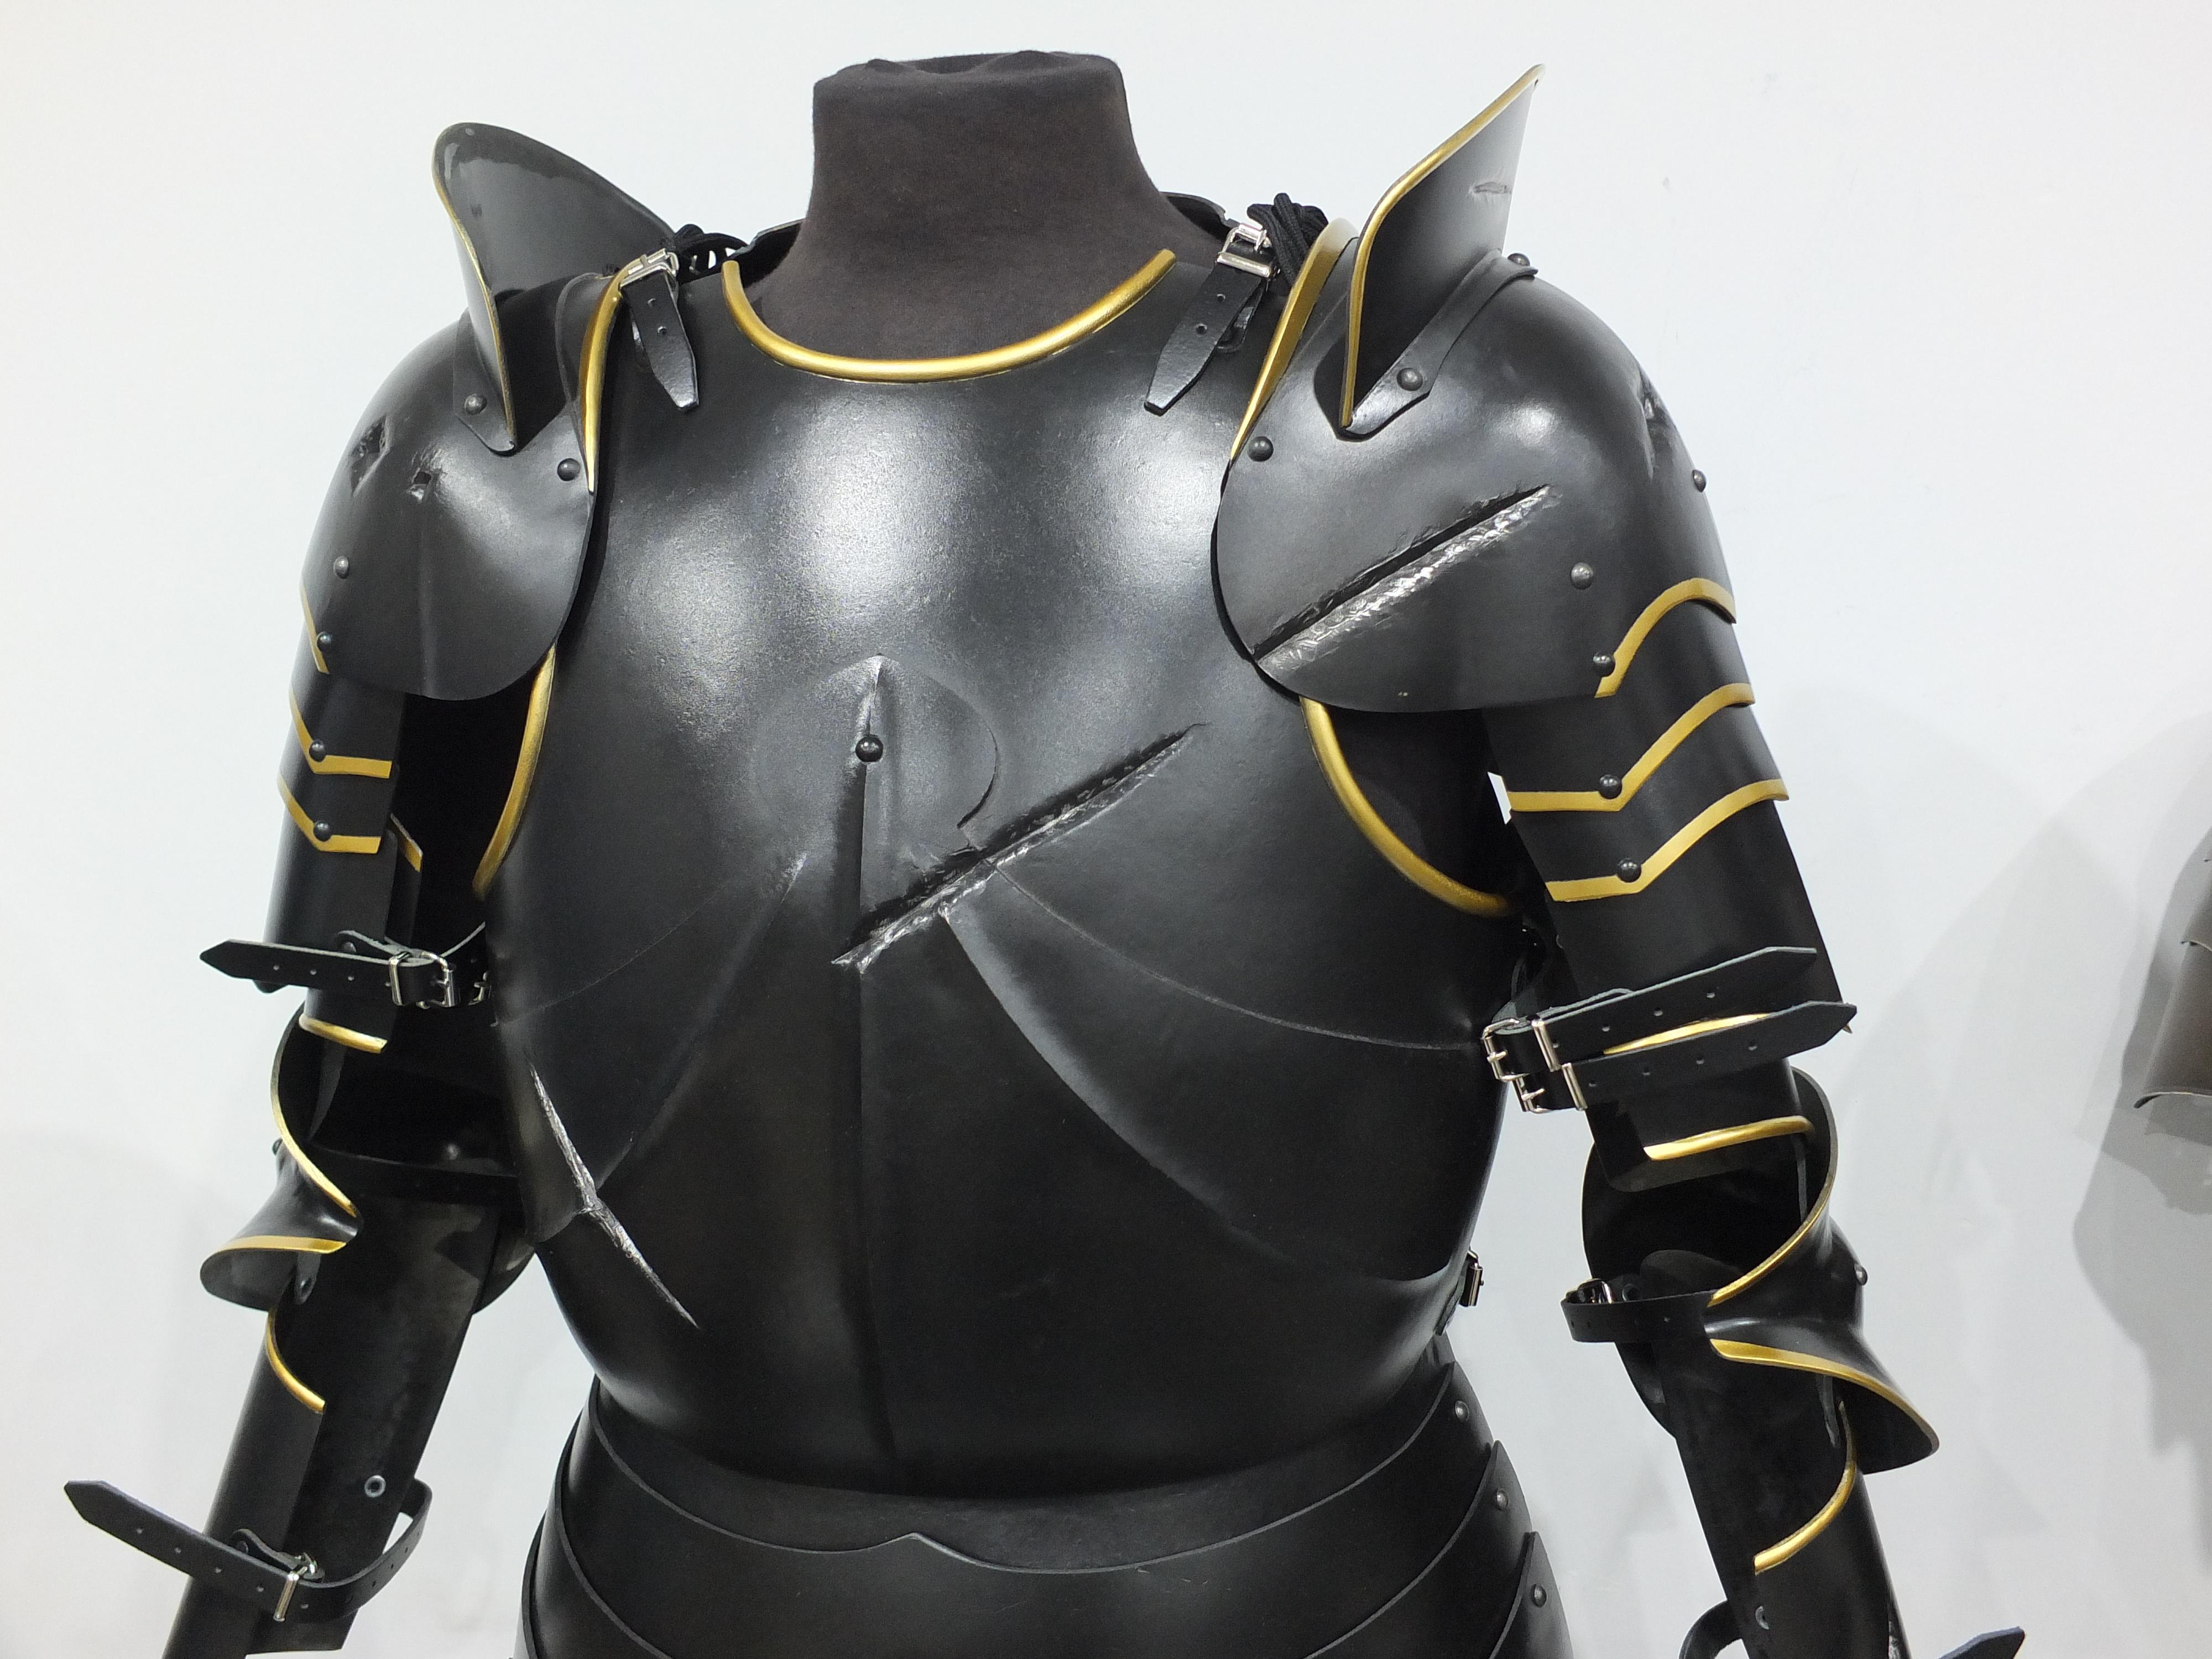 German armour set with battle damage in black and gold finish